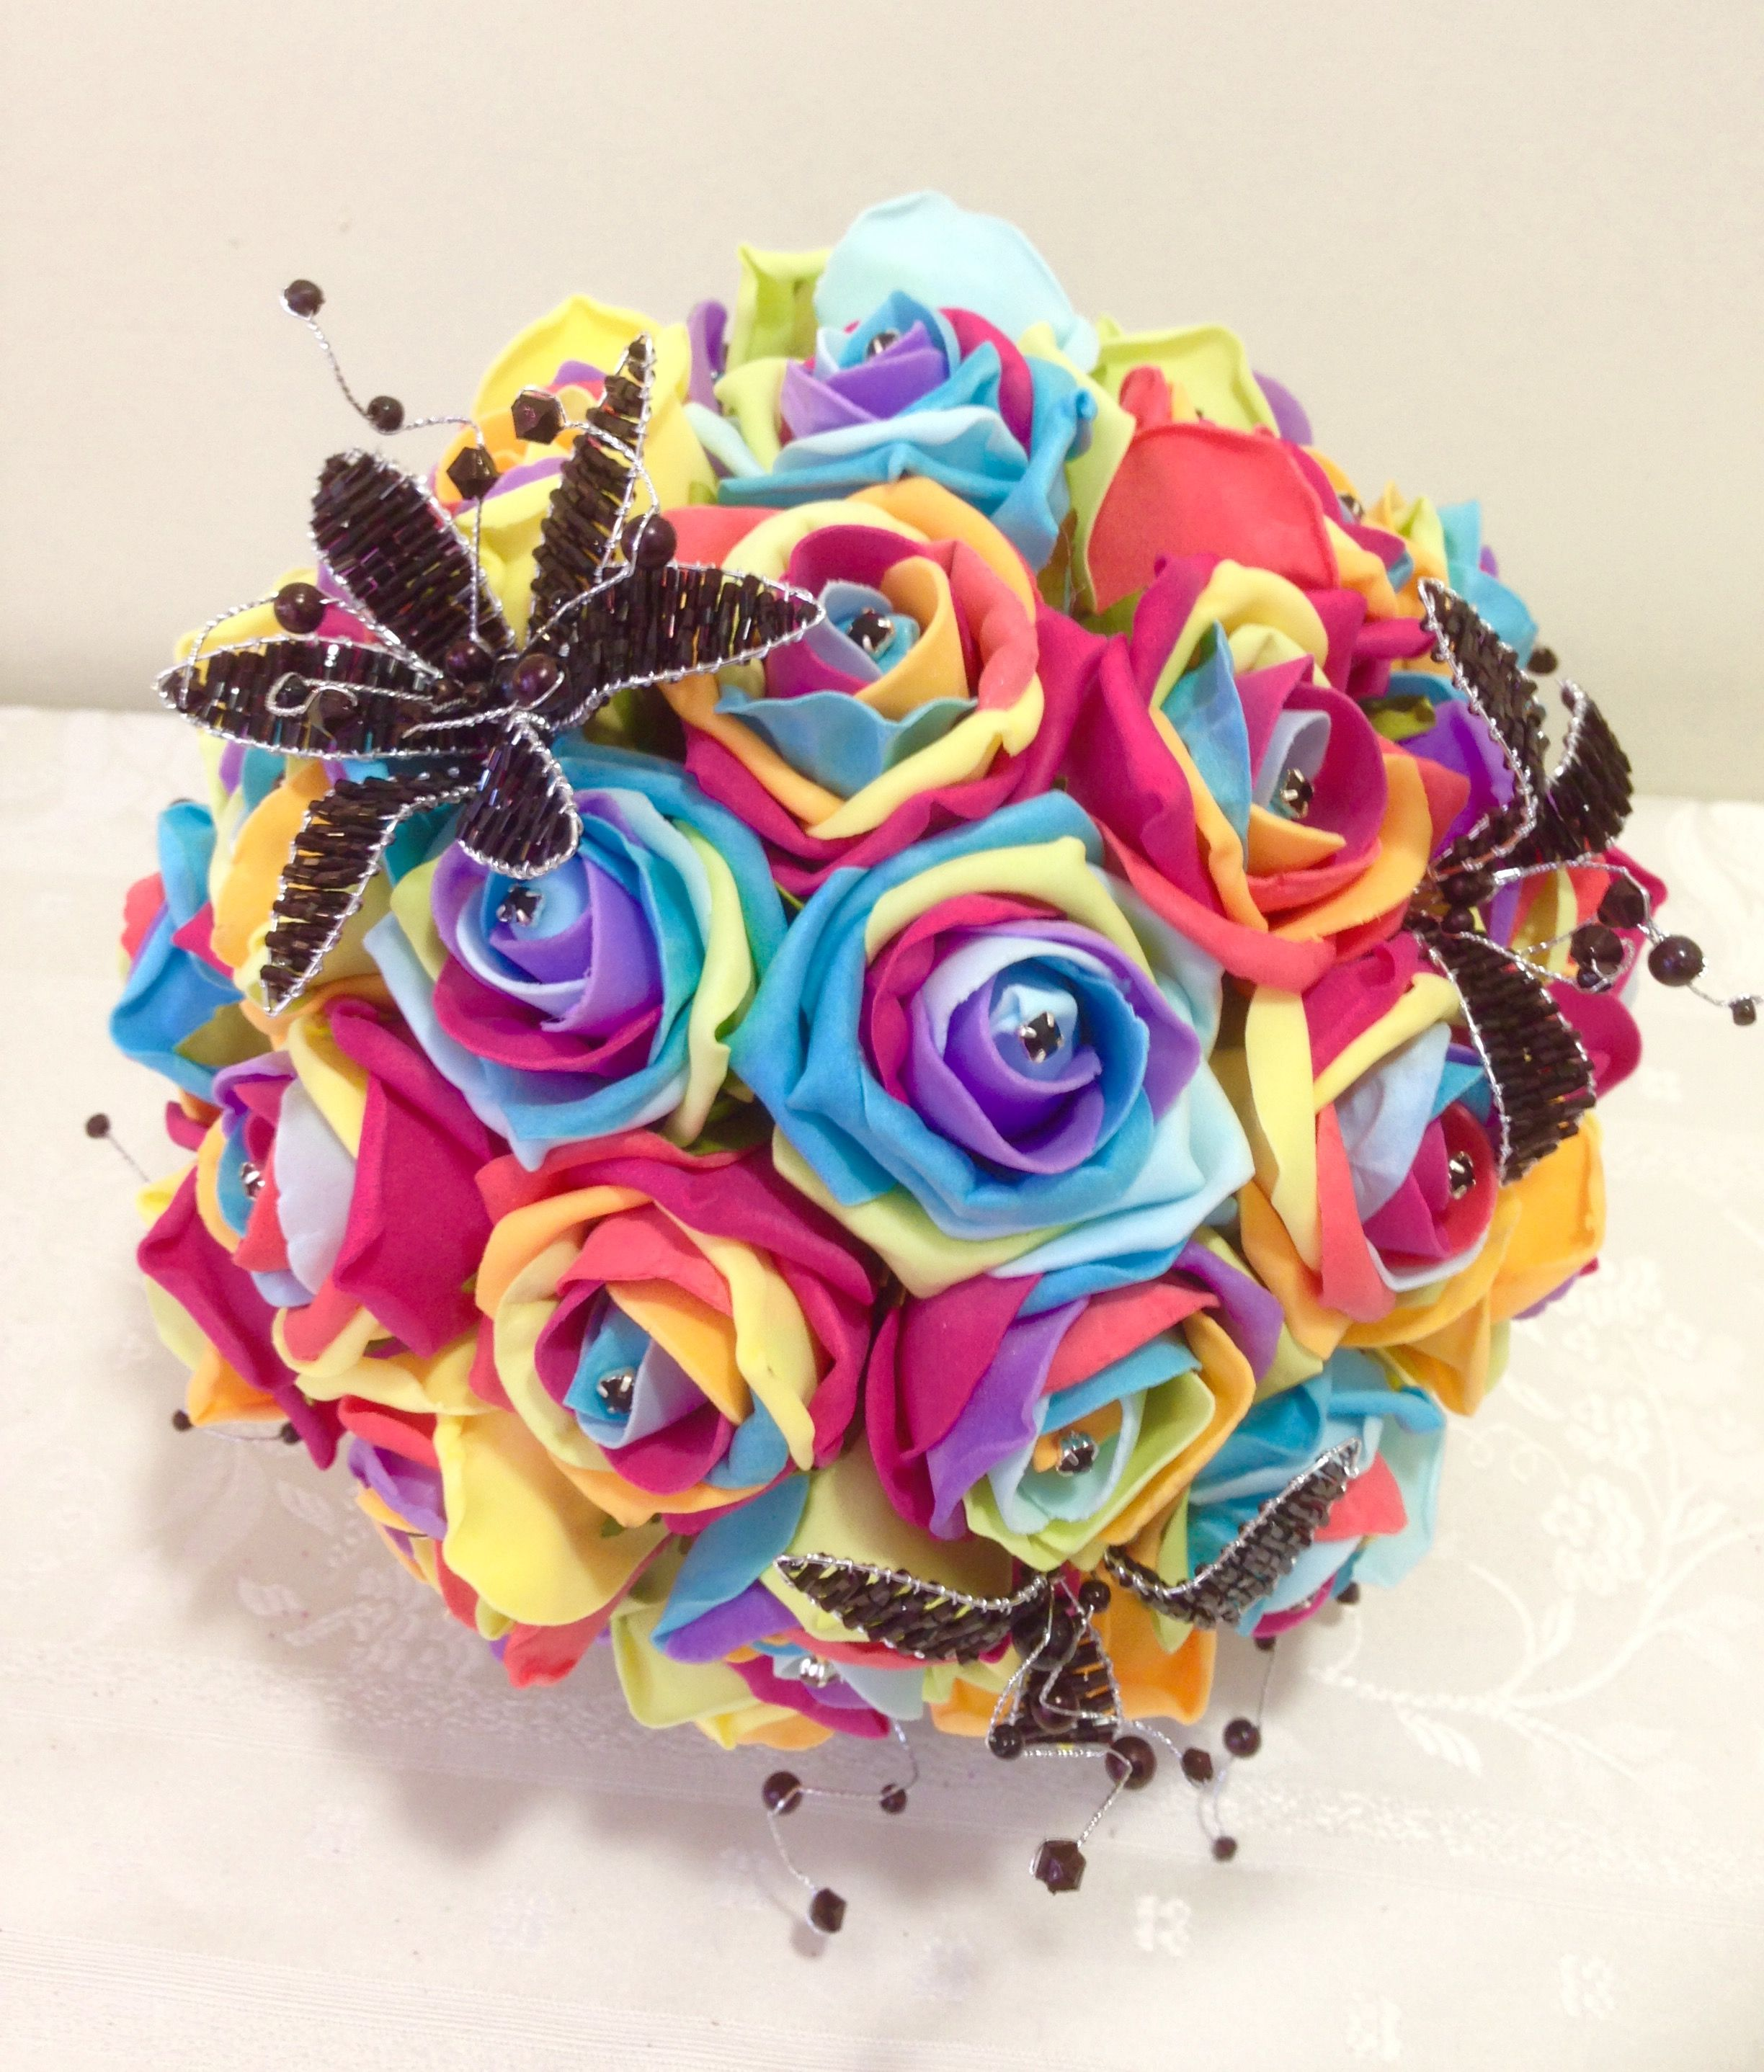 A Firm Favourite This Wedding Season Using The Fabulous Rainbow Roses With Hint Of